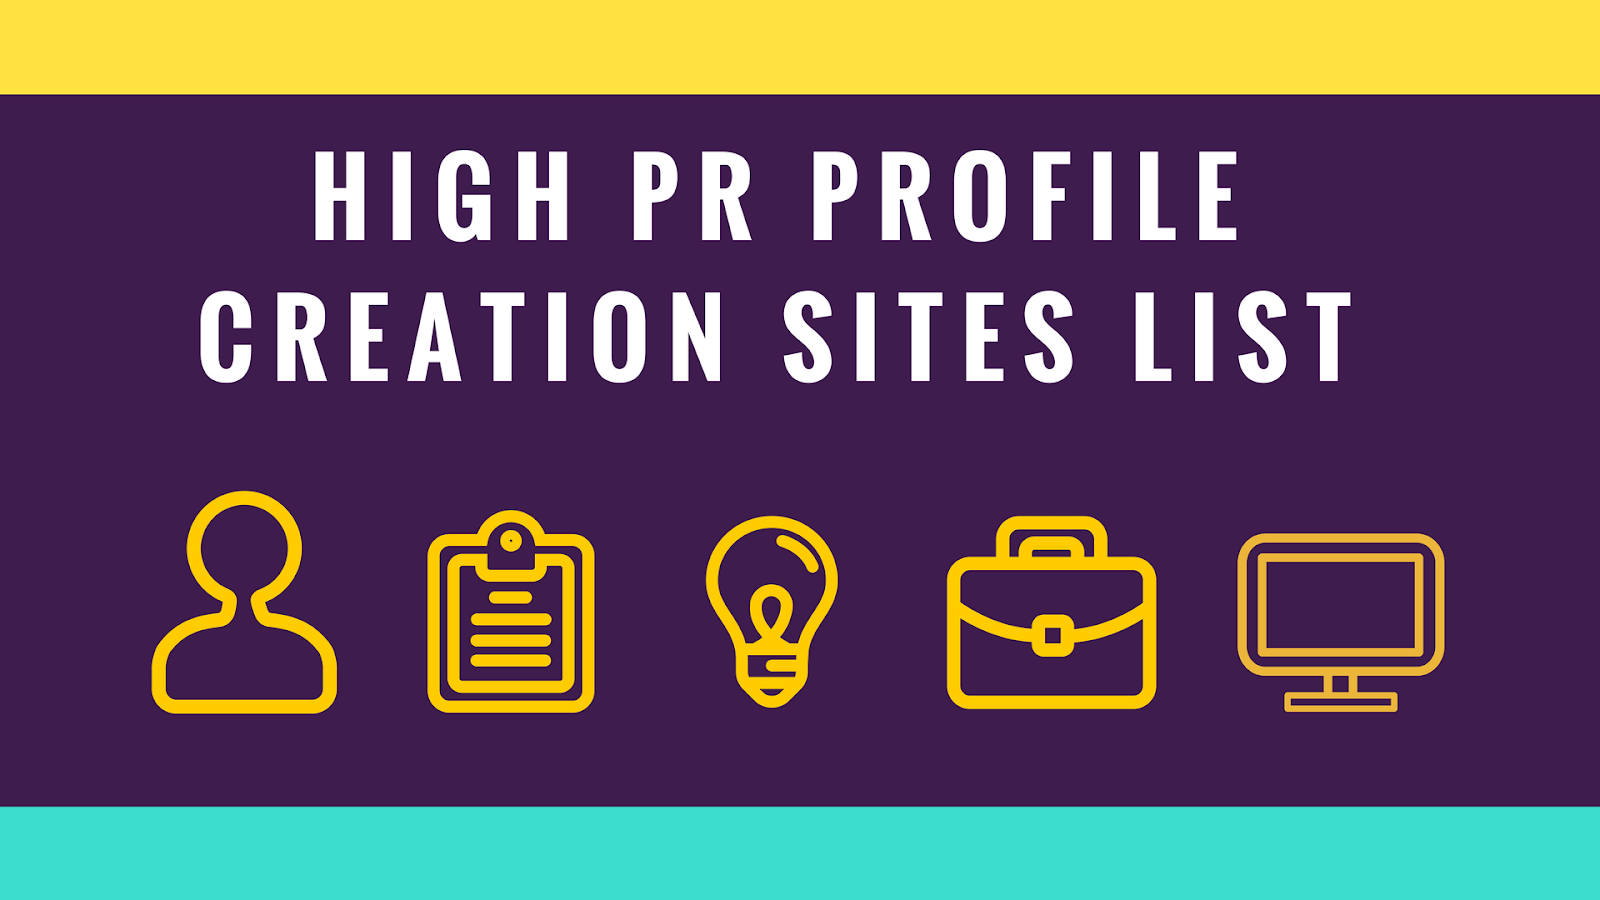 New Profile Creation Sites List for 2019